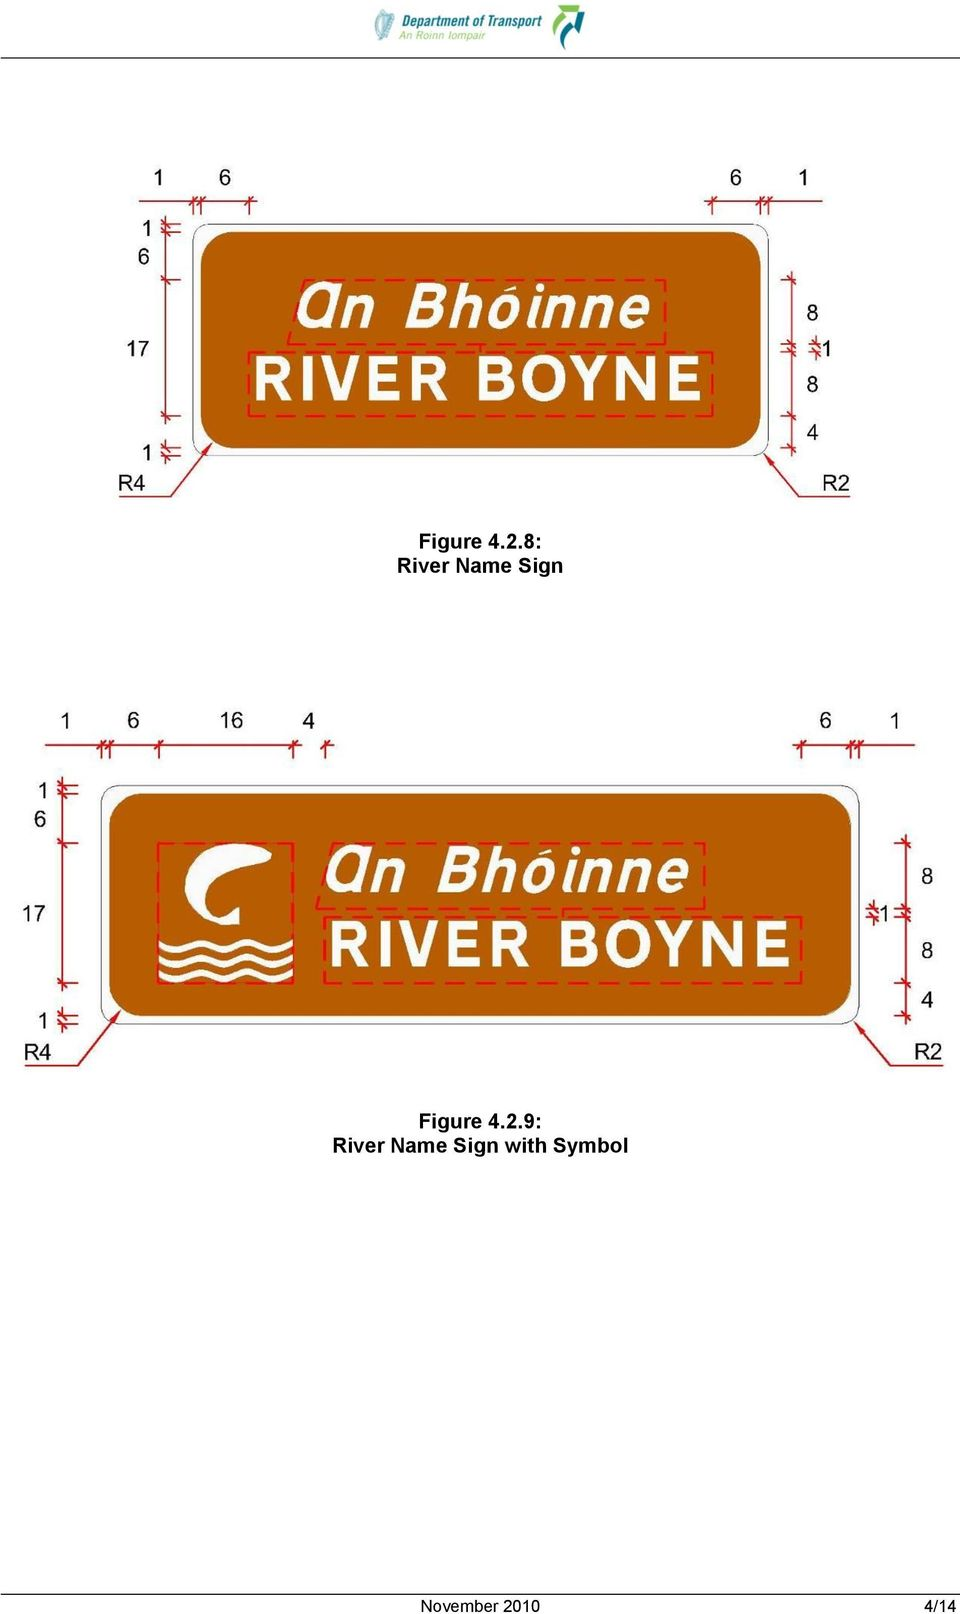 River Name Sign with